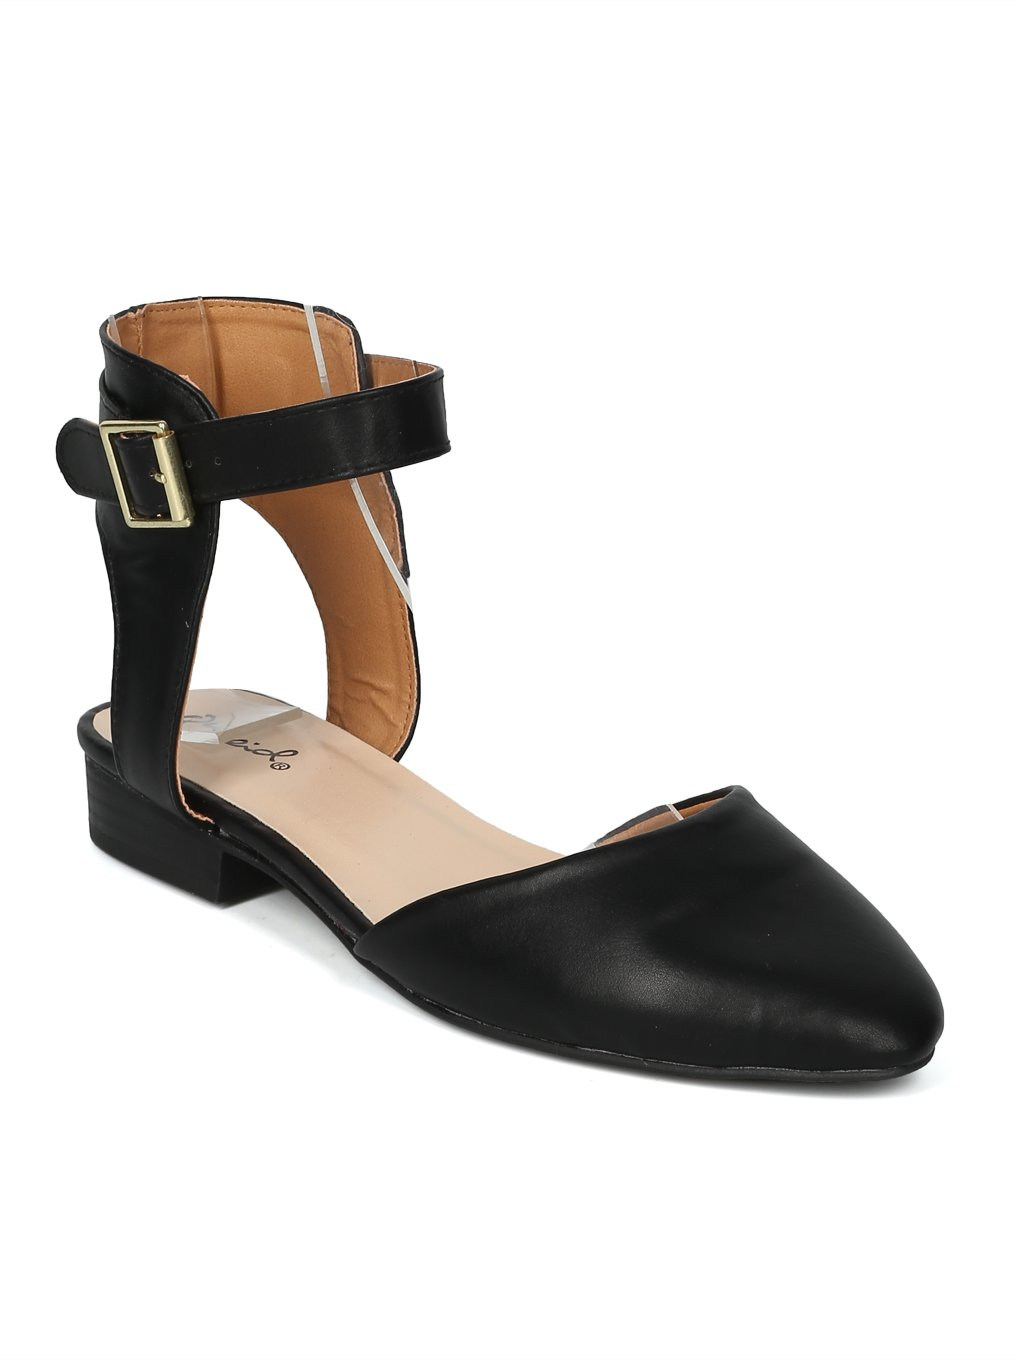 Women Pointy Toe D'Orsay Ankle Strap Flat - IA01 by Qupid Collection B07FD52ZBG 8.5 B(M) US|Black Leatherette